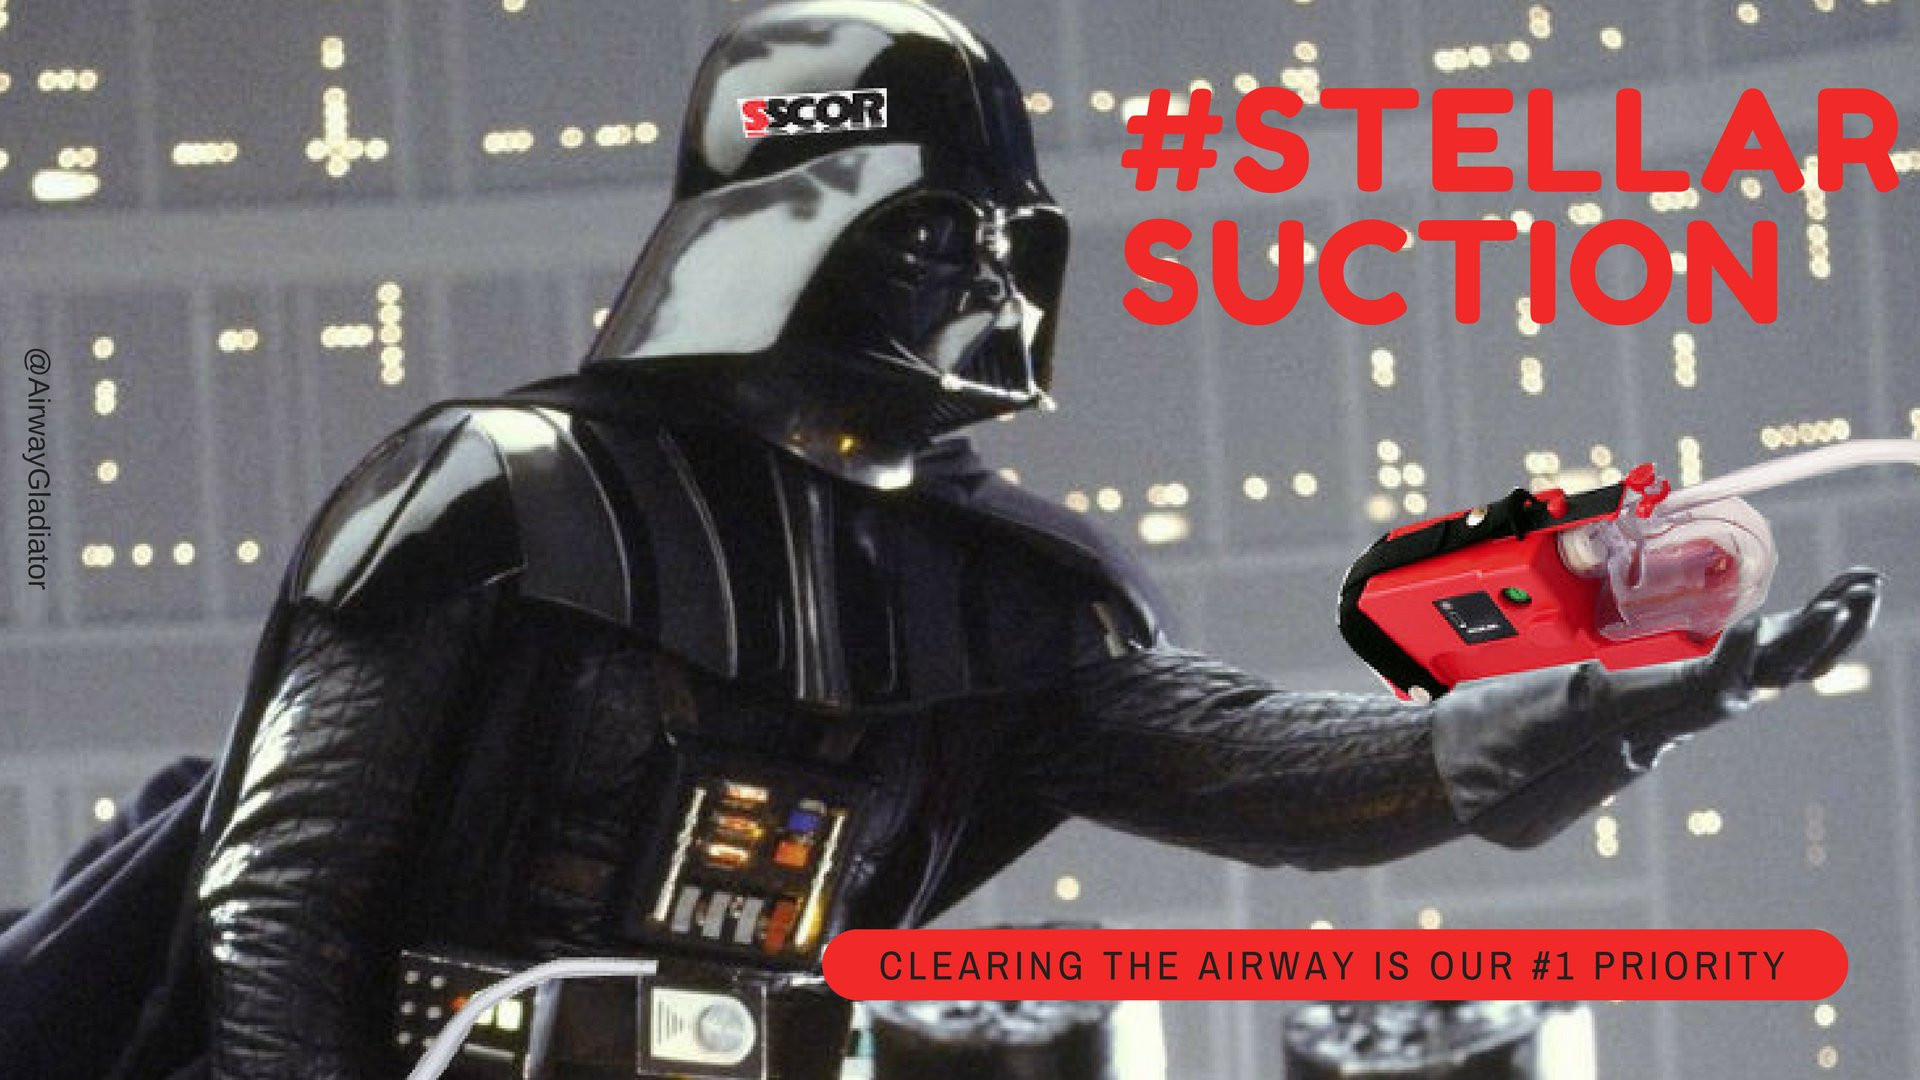 @jducanto @SSCORsuction #SUCTION Wars in the Airway https://t.co/a3ANk1zsmL